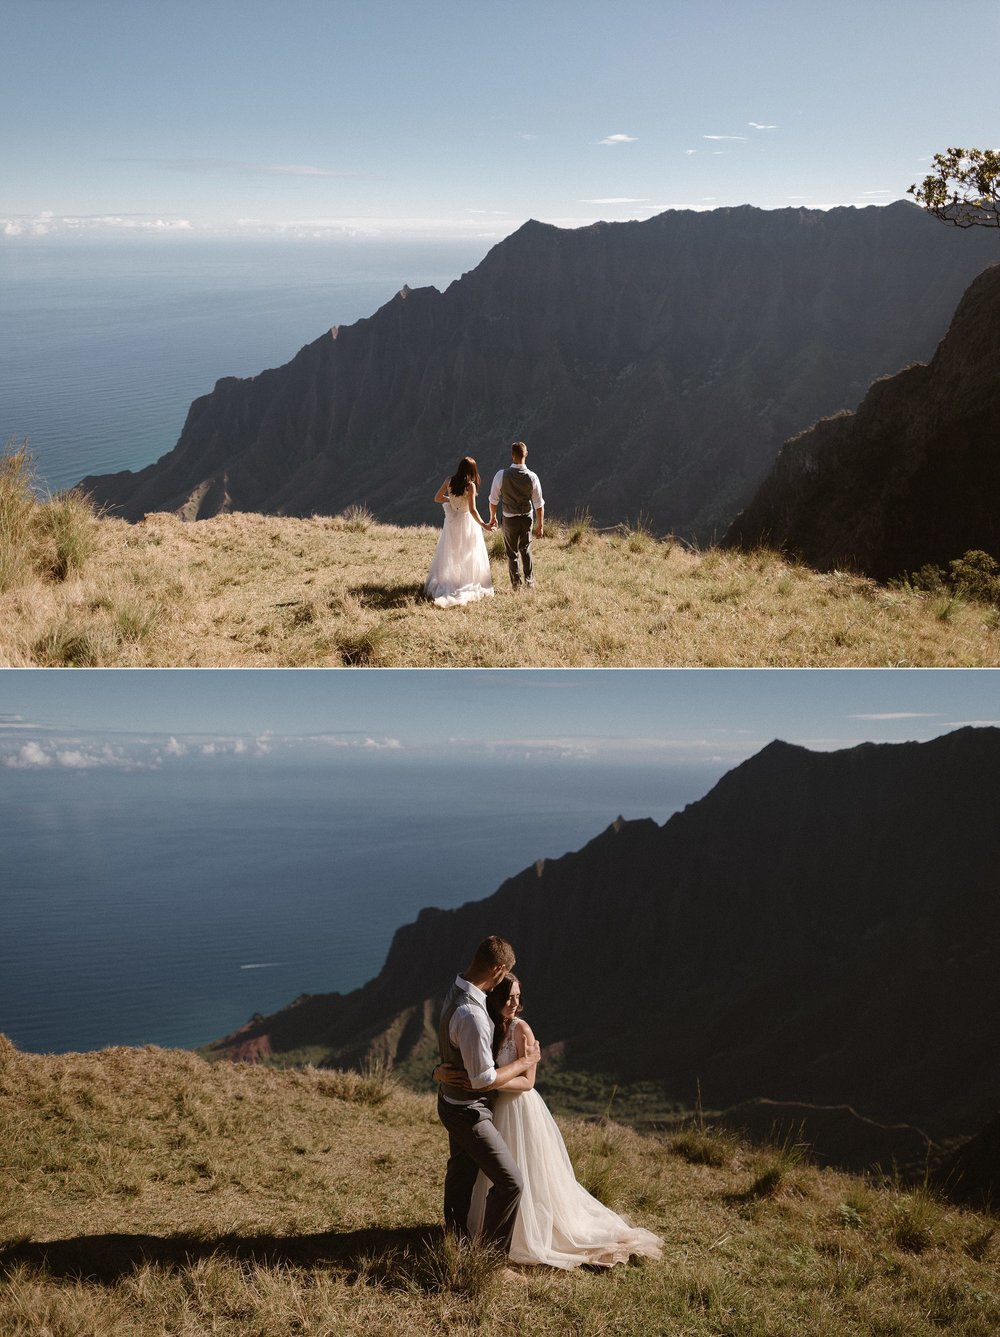 Basking in the warm Hawaiian sun and realizing that they had just begun the adventure of a lifetime with the most epic hike through Kauai's  Kokee State Park for their intimate elopement. They chose to say their vows privately high above the touristy beaches with only their traveling wedding photographer Maddie Mae as their witness.